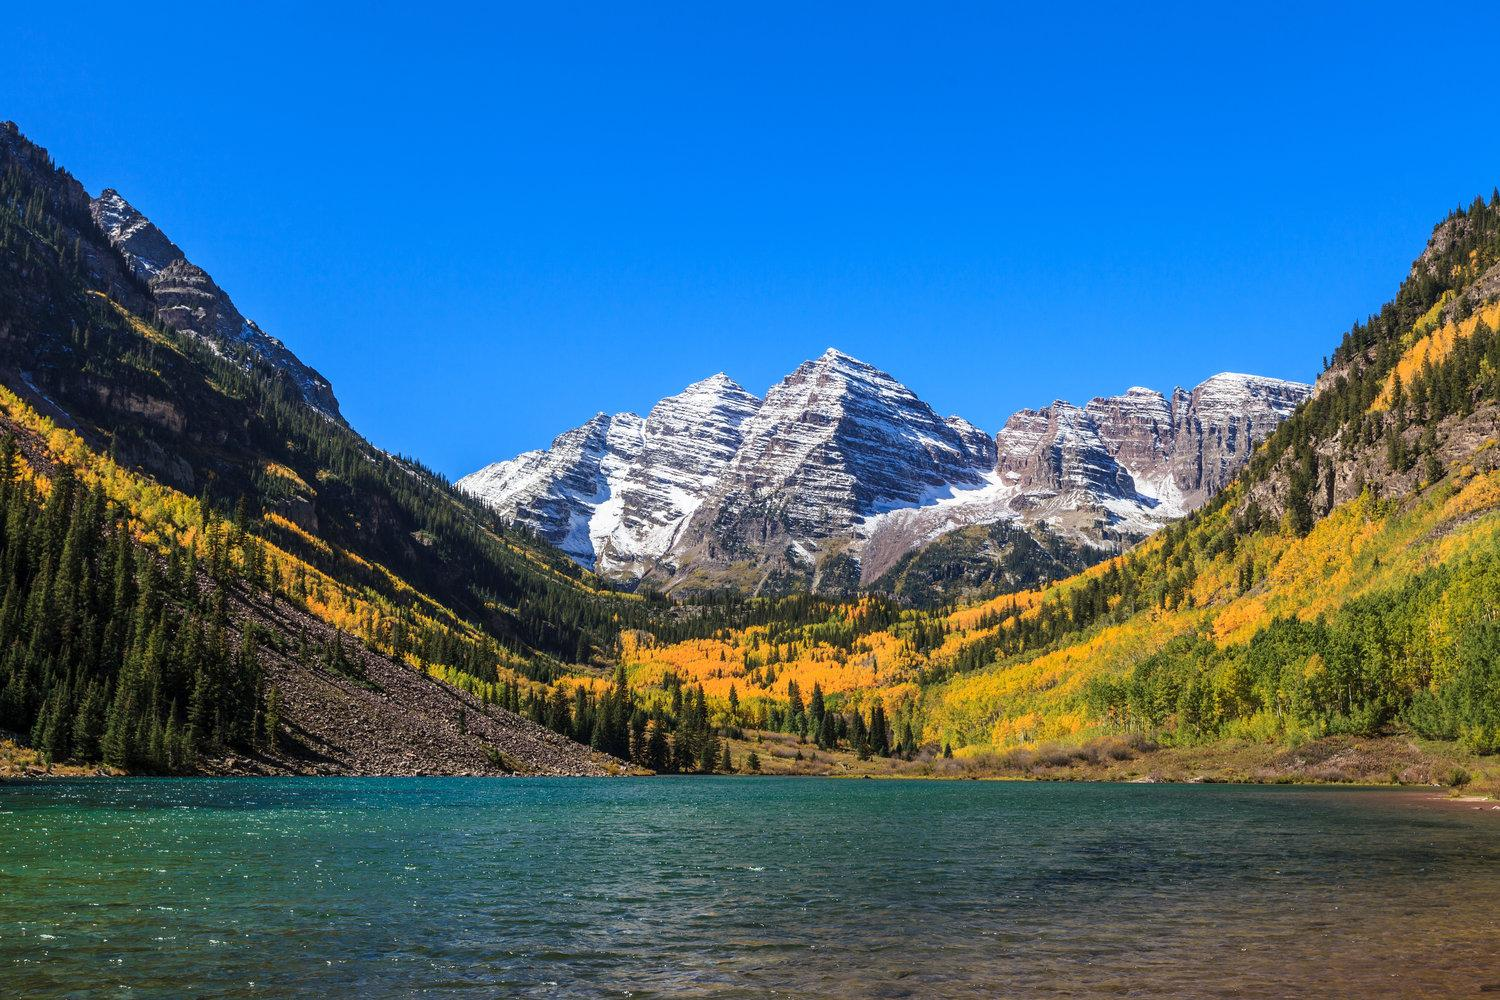 Marvel at Aspen's Maroon Bells and Crater Lake, two of Colorado's most iconic landmarks